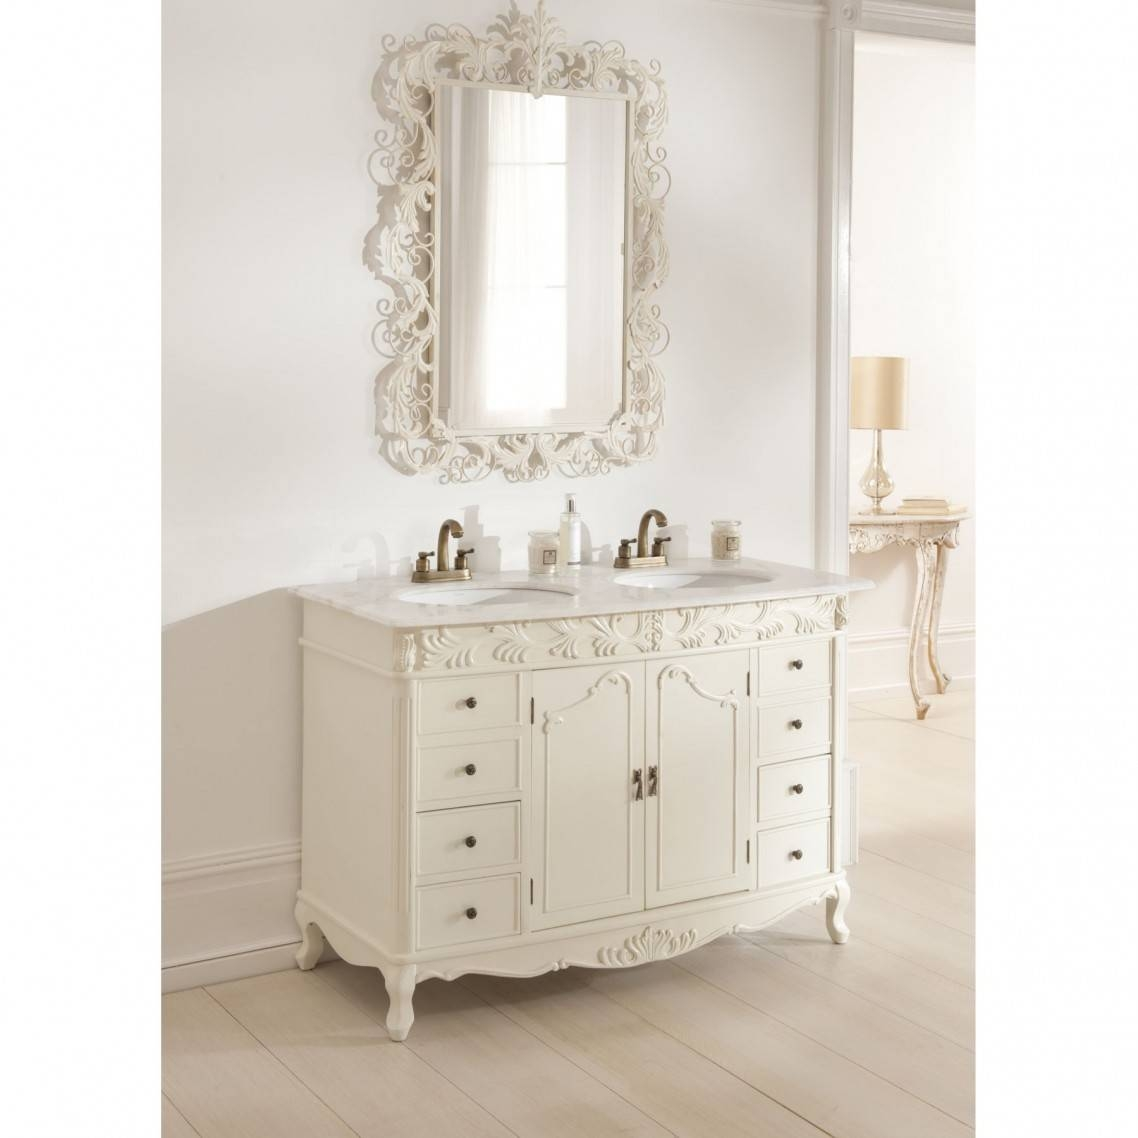 French Style Bathroom Mirrors | Home with French Bathroom Mirrors (Image 13 of 15)